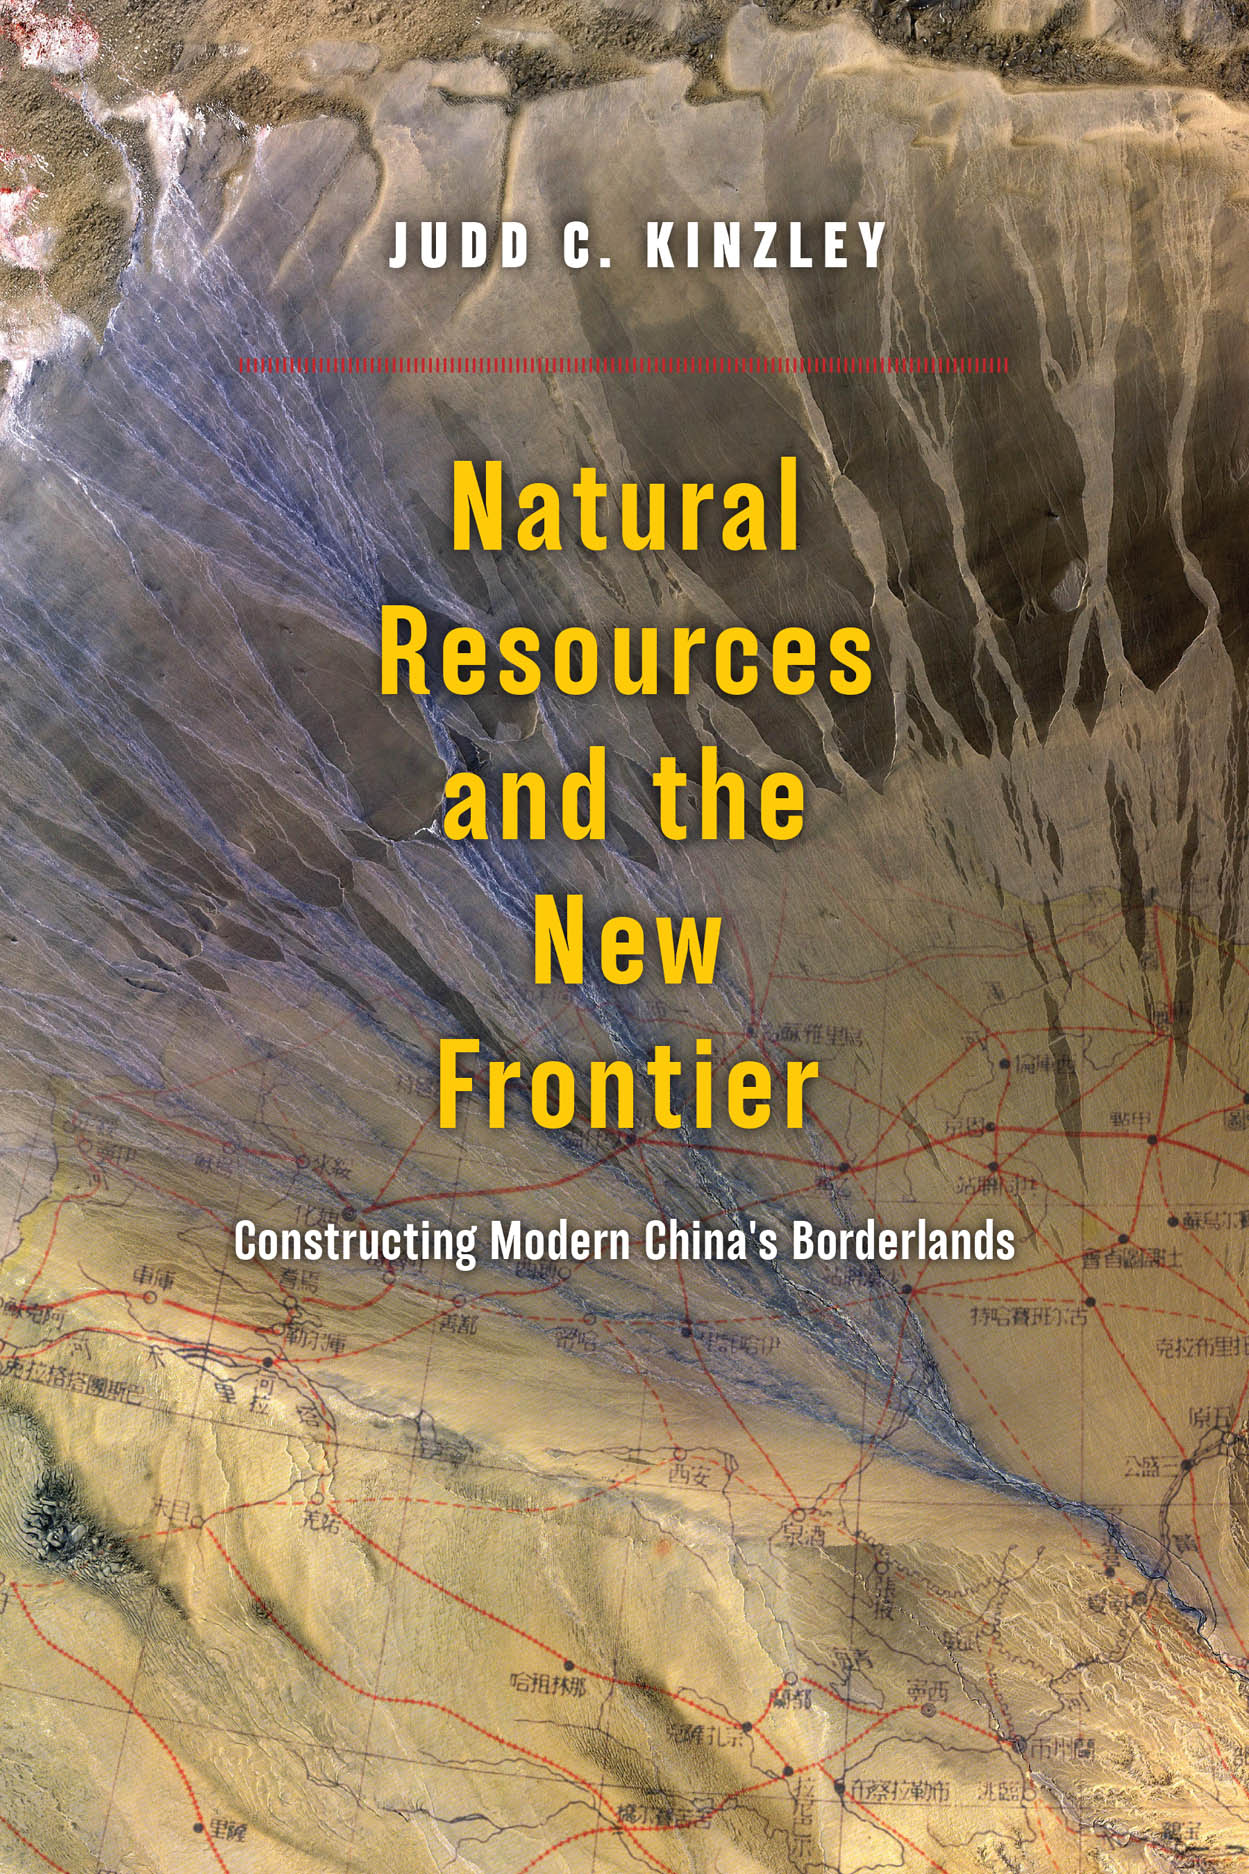 Natural Resources and the New Frontier: Constructing Modern China's Borderlands